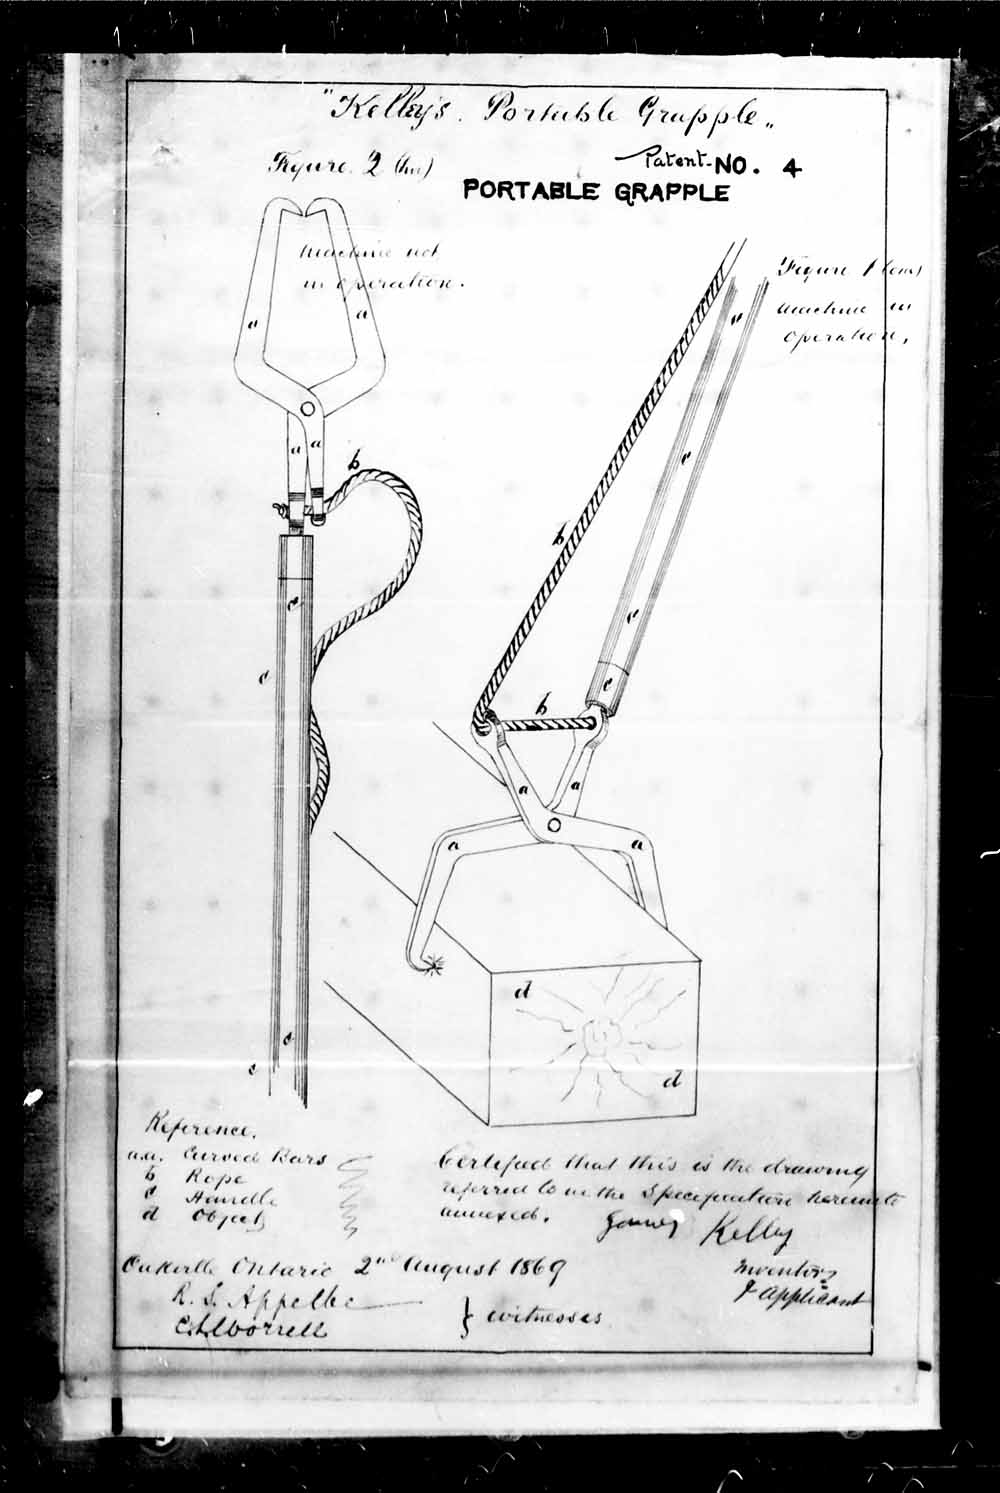 A MACHINE FOR GRAPPLING, FASTENING UPON, AND DRAWING OR MOVING WEIGHTS, p. 4